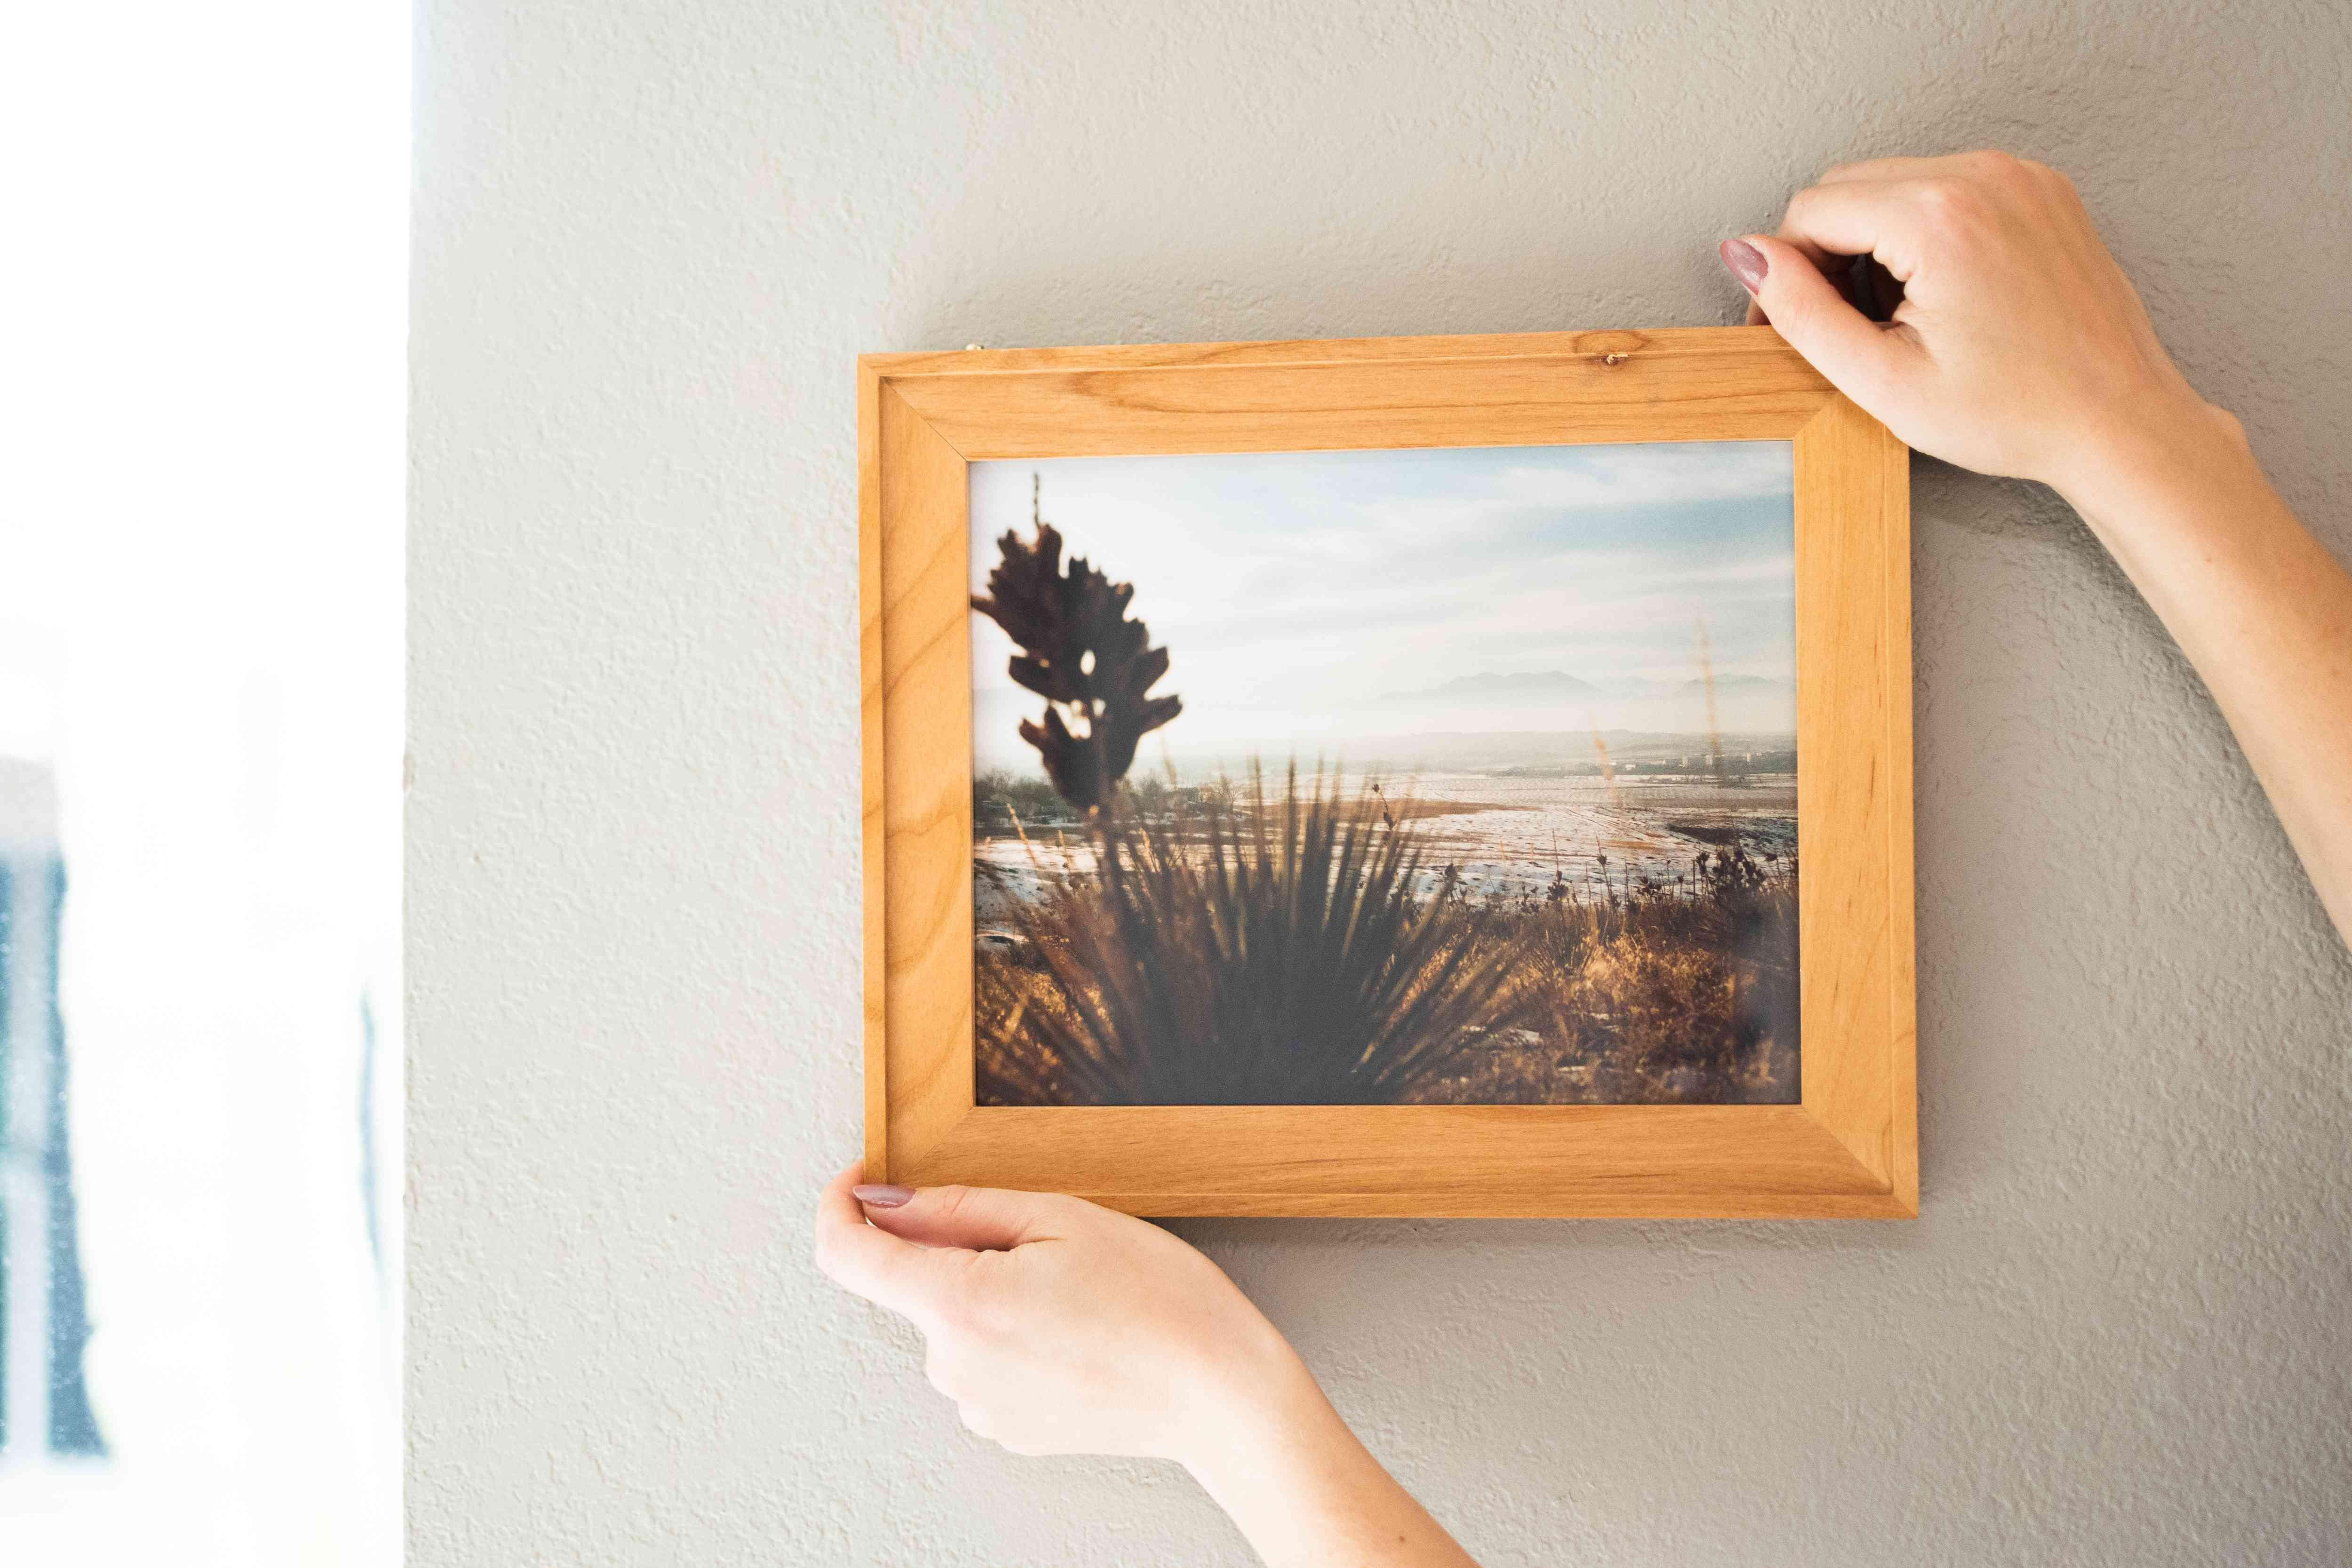 Picture being hanged on two wall hangers with hands